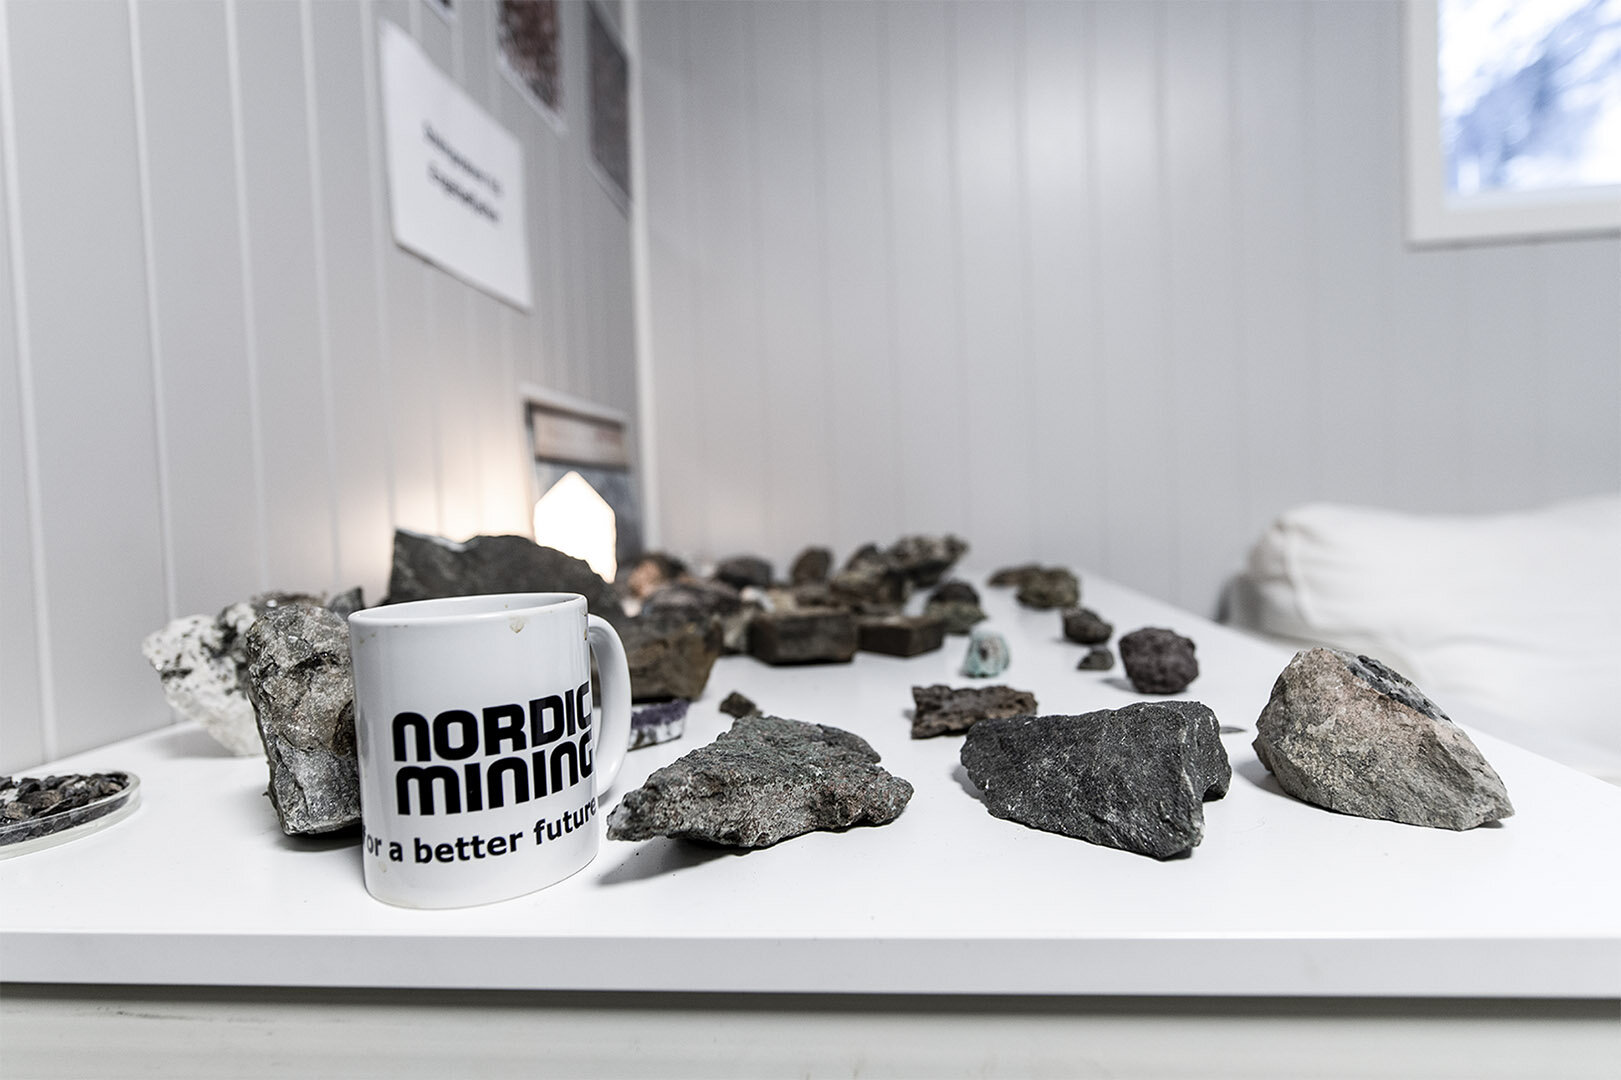 From Nordic Mining Headquarters in Naustdal.